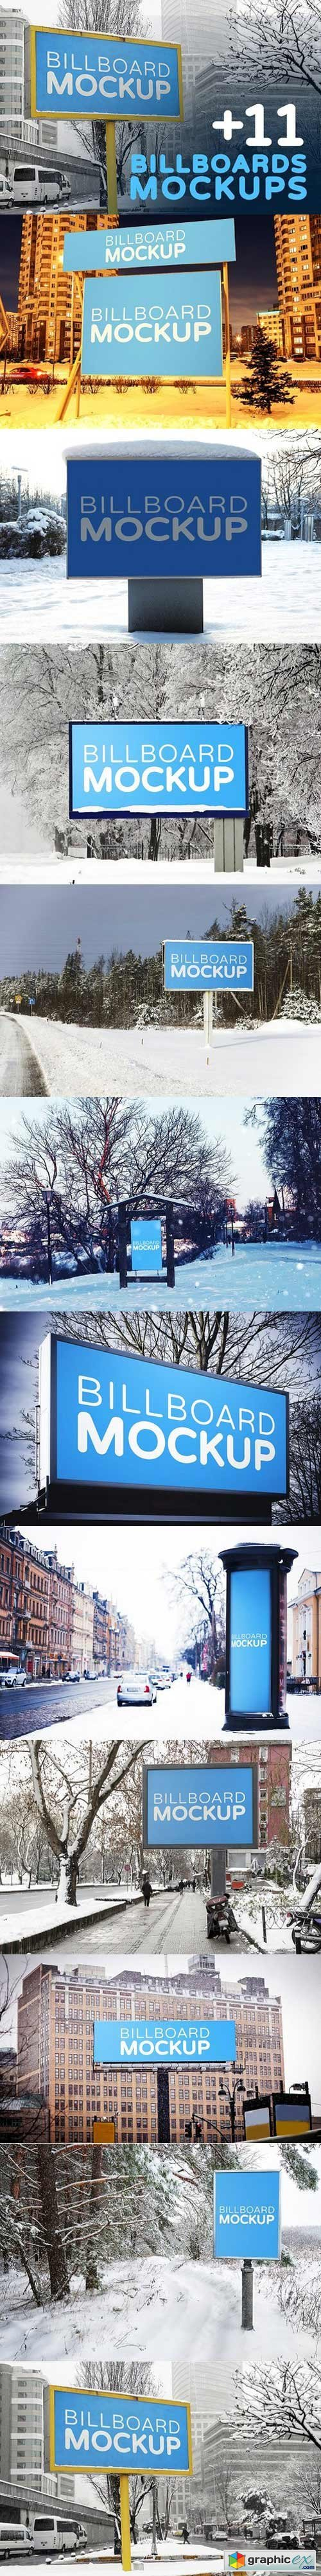 Billboards Mockups in Winter 1513362